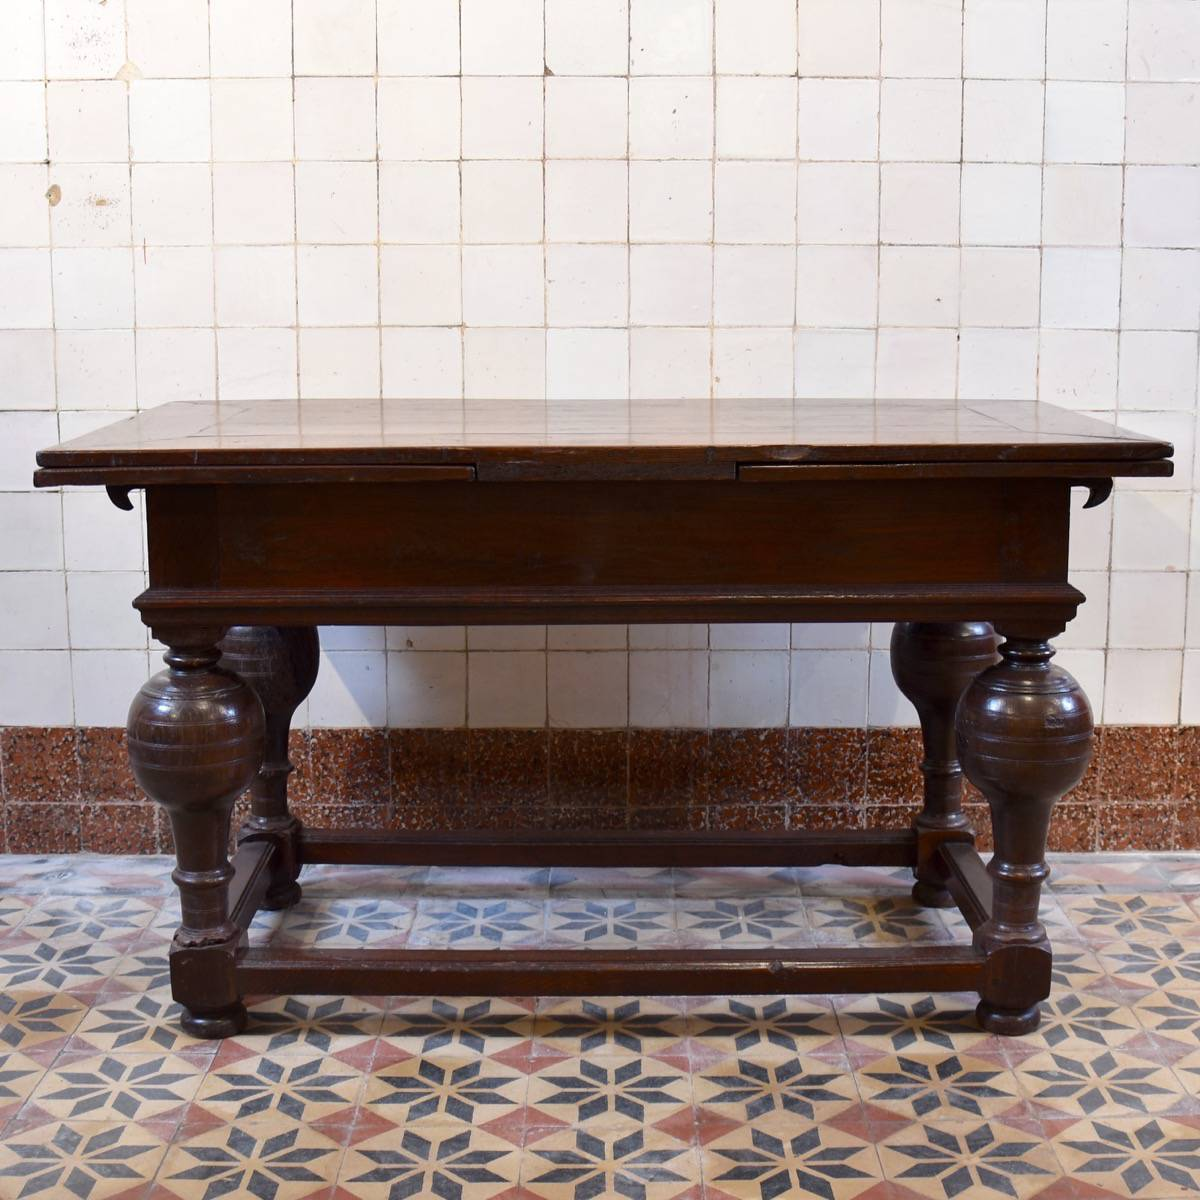 dating antique table legs